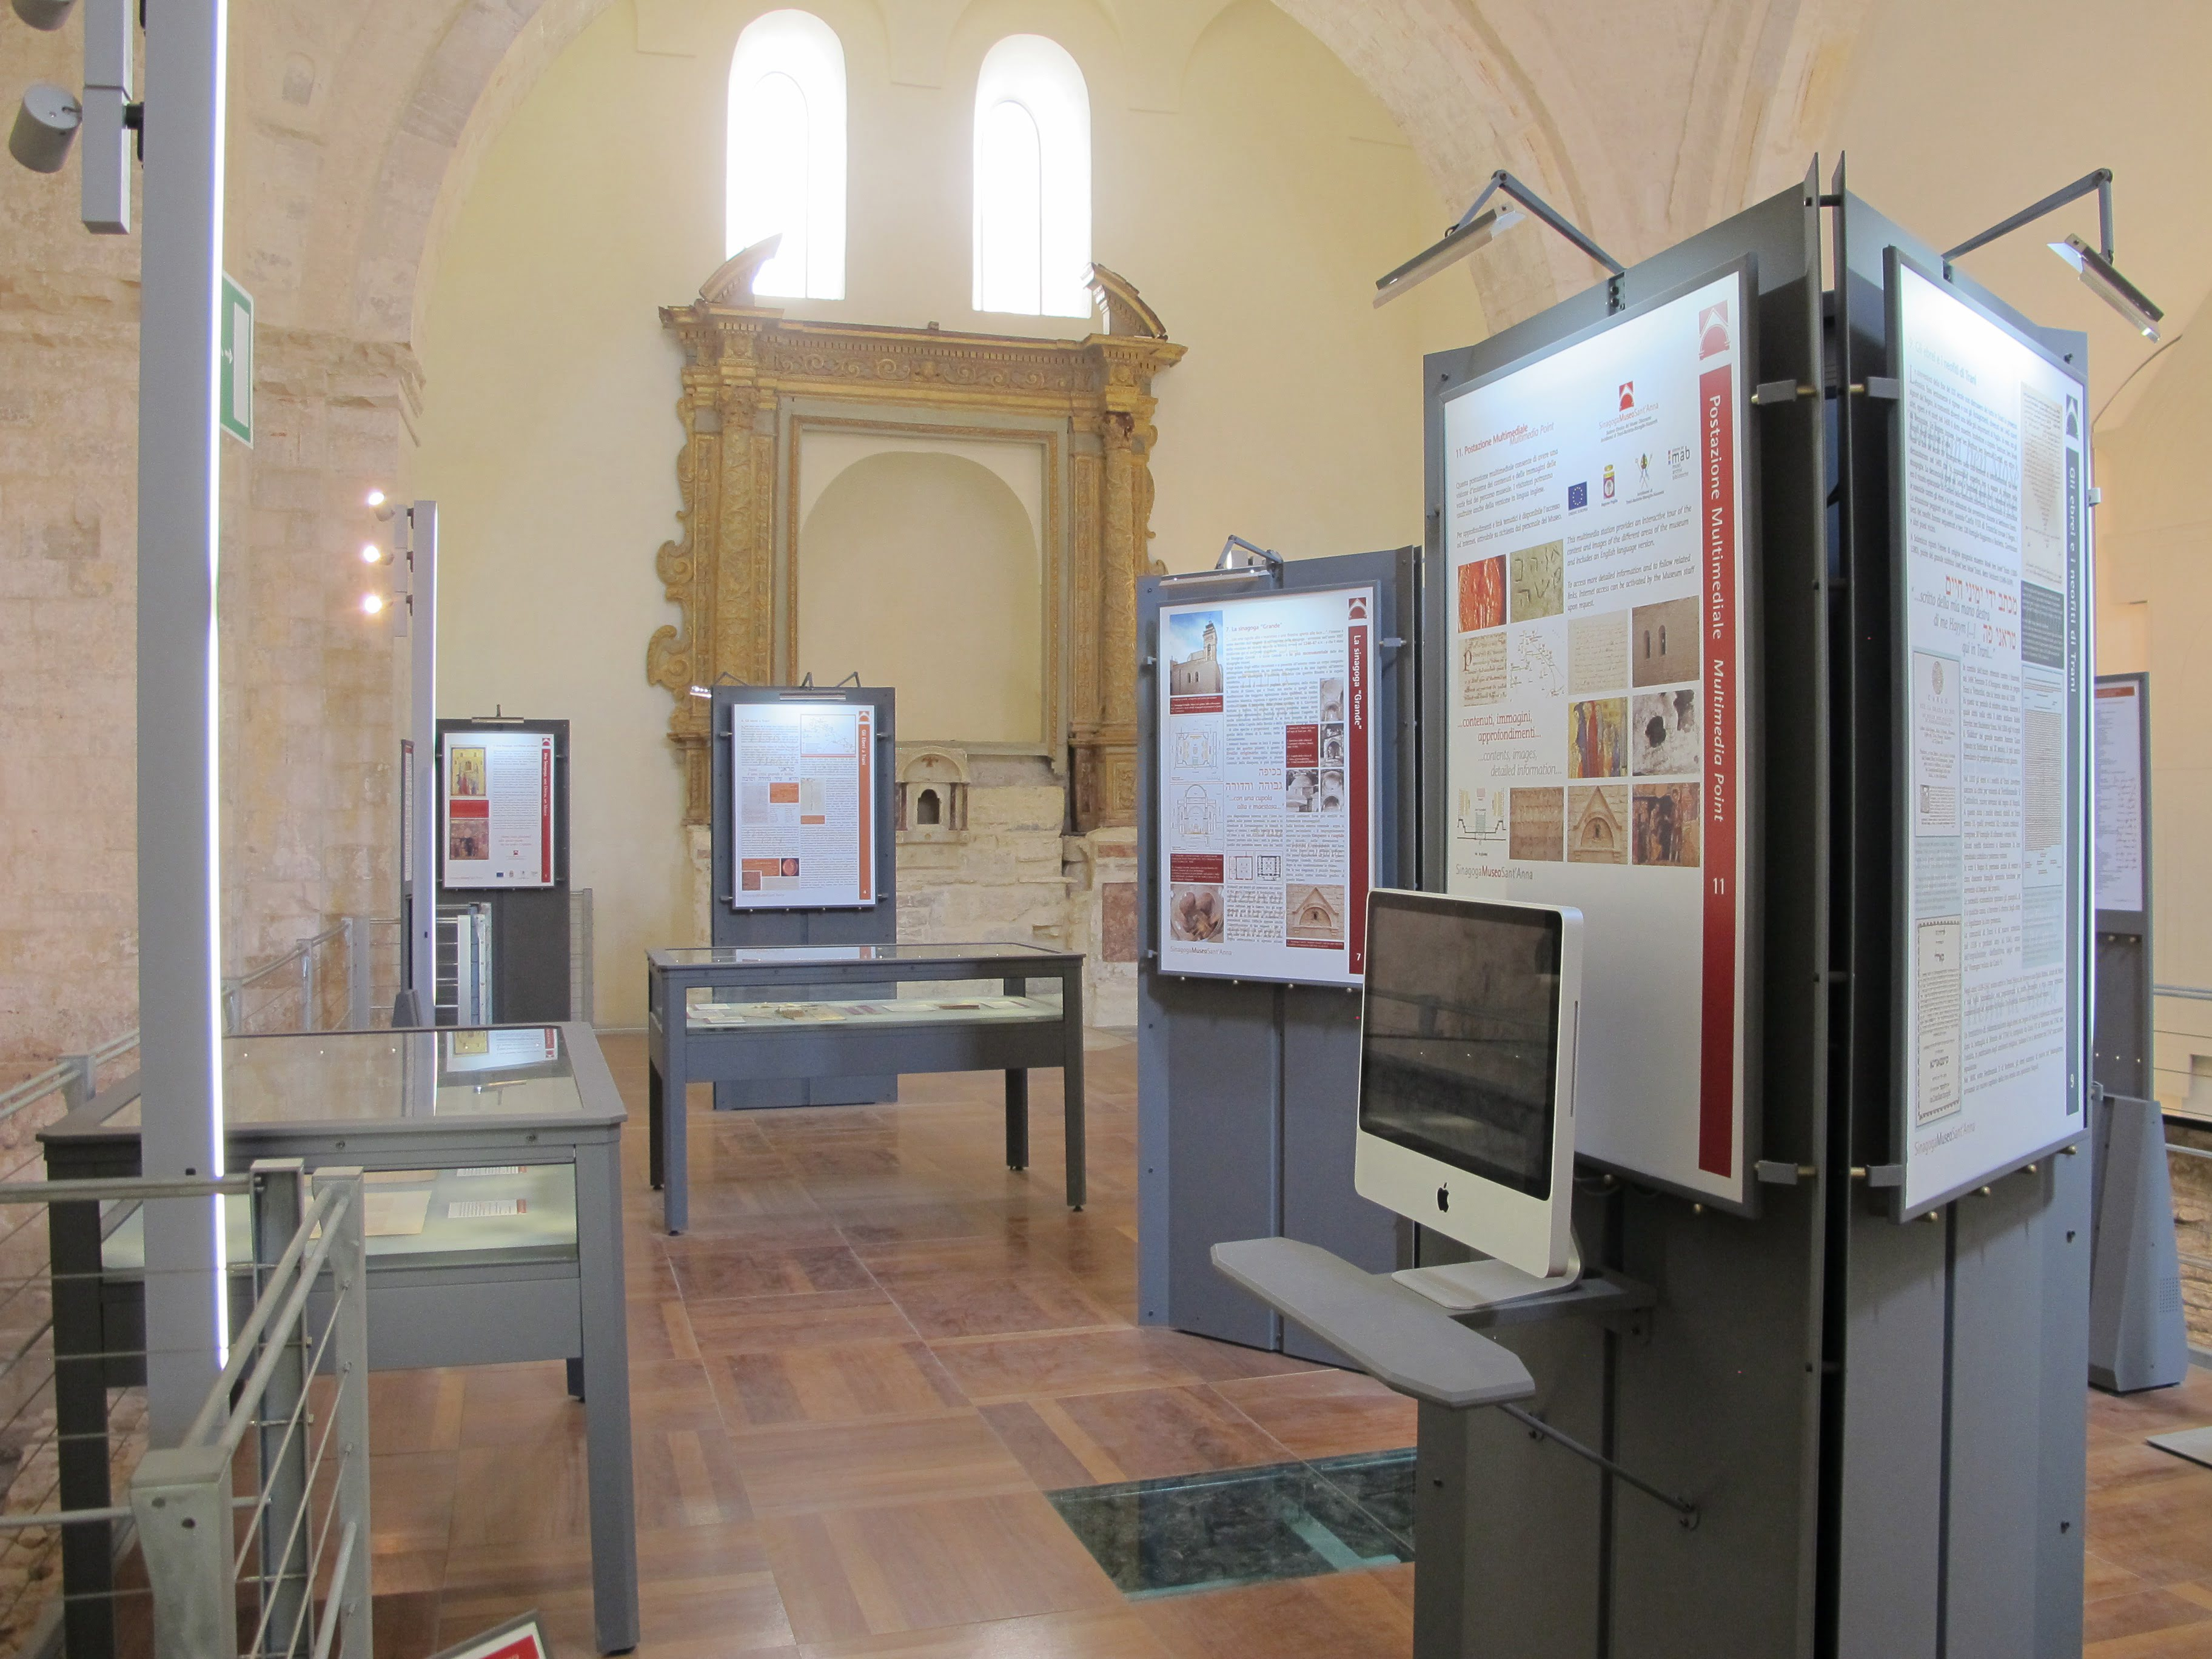 General view of the Jewish section of the Trani Diocesan museum. Photo (c) Ruth Ellen Gruber